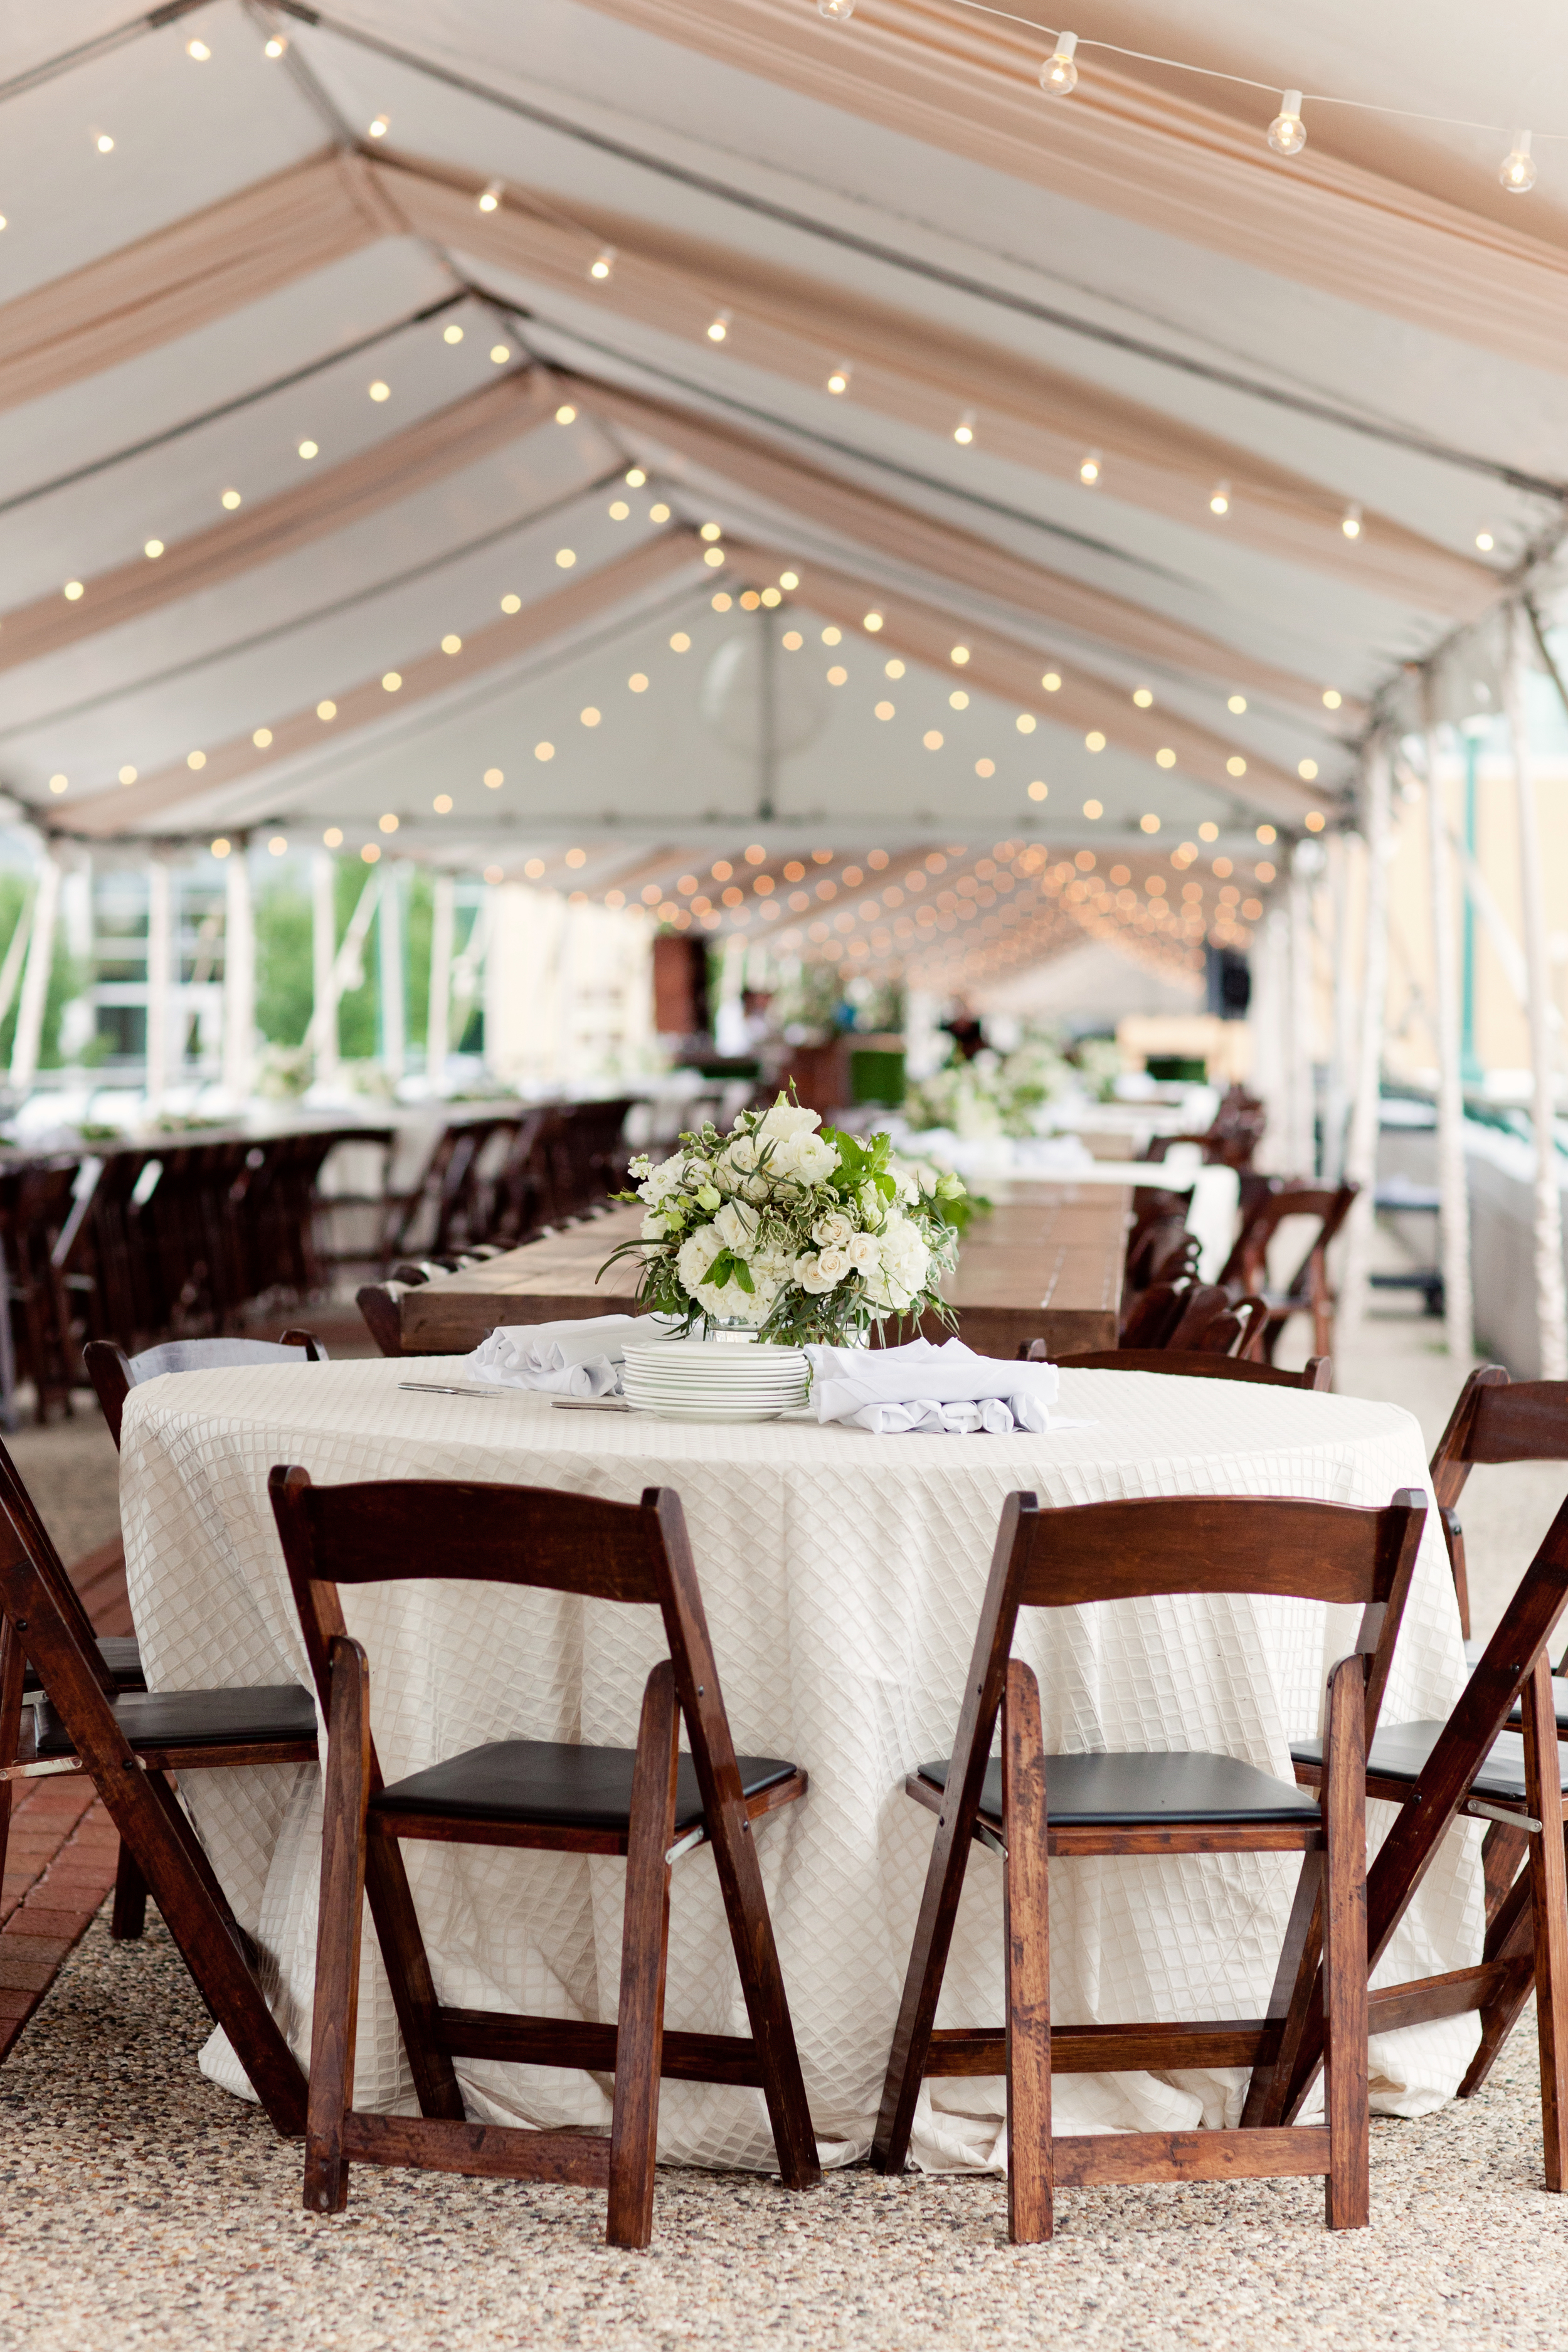 Gillette Bridge Tented Event with Bulb String Lights